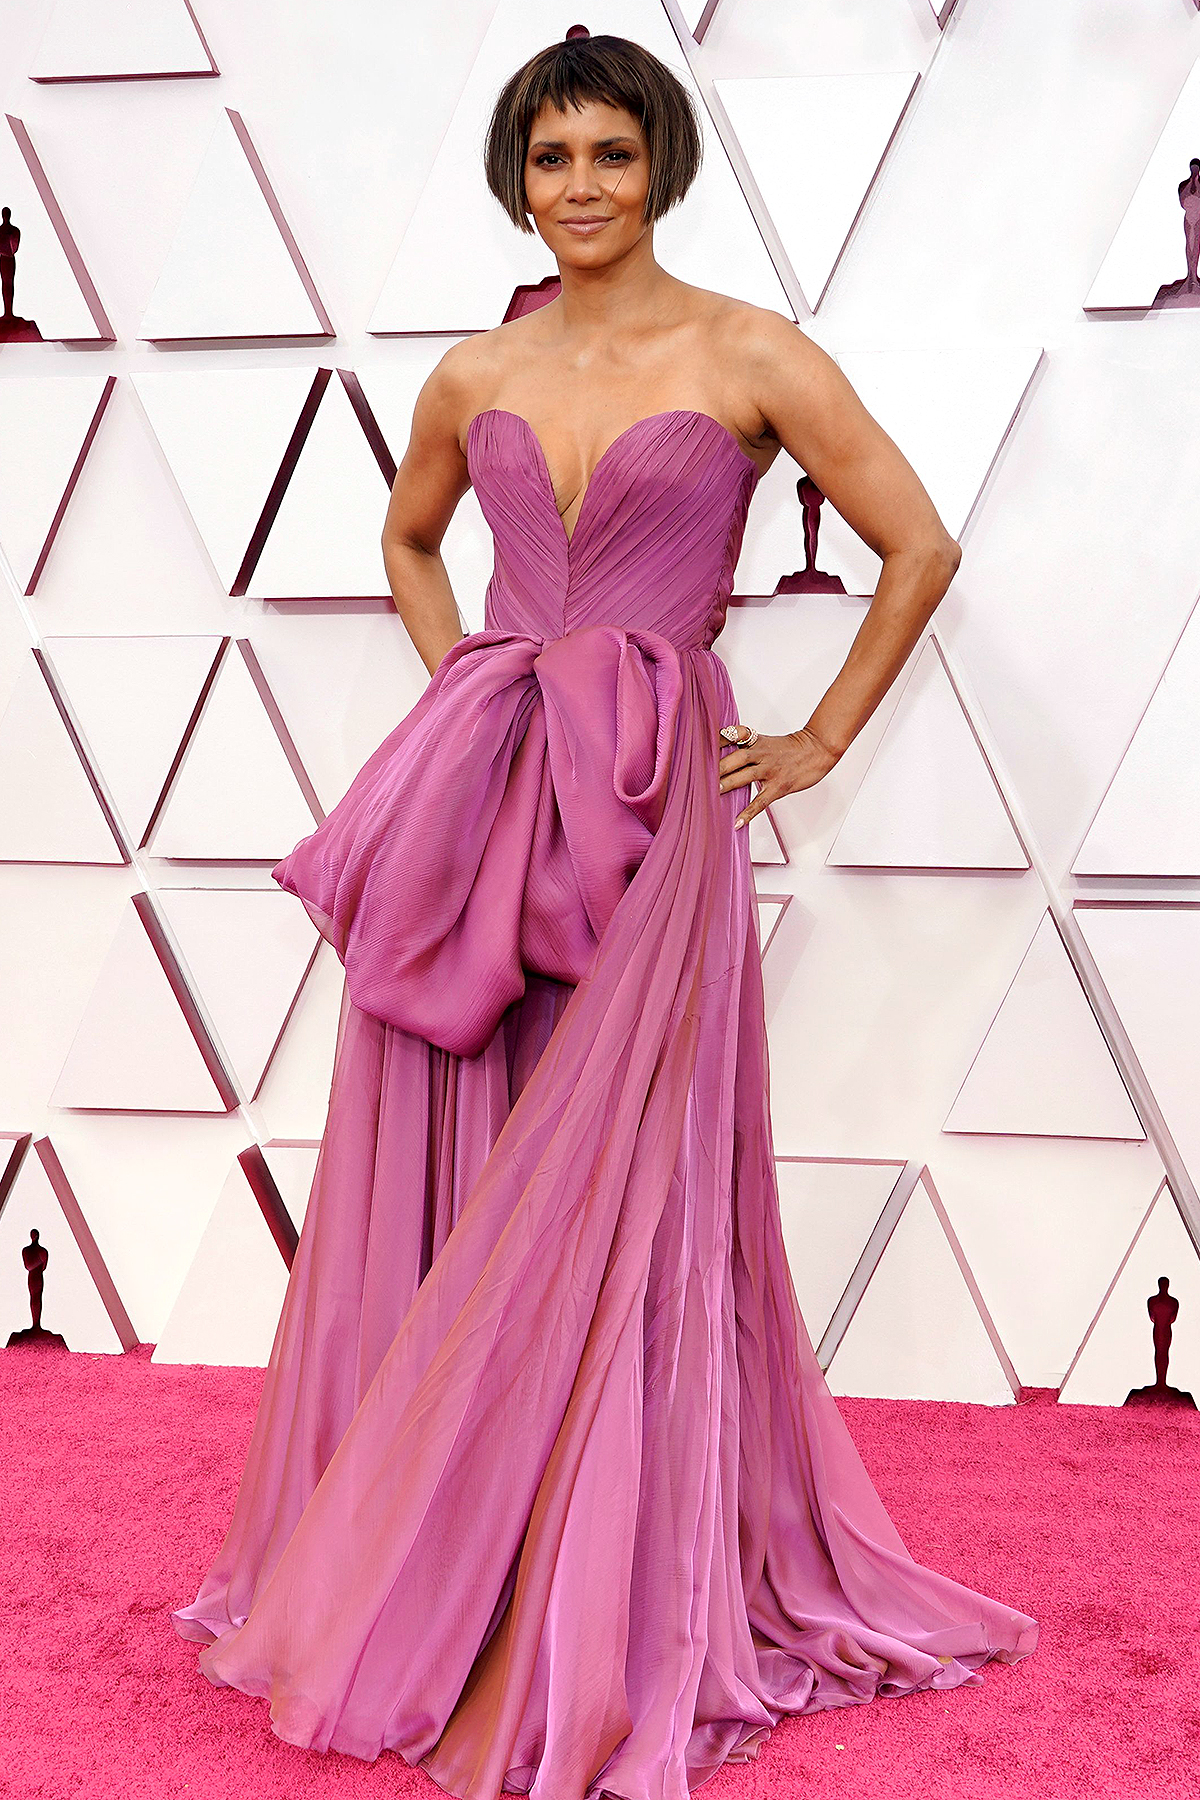 Halle Berry arrives at the Oscars